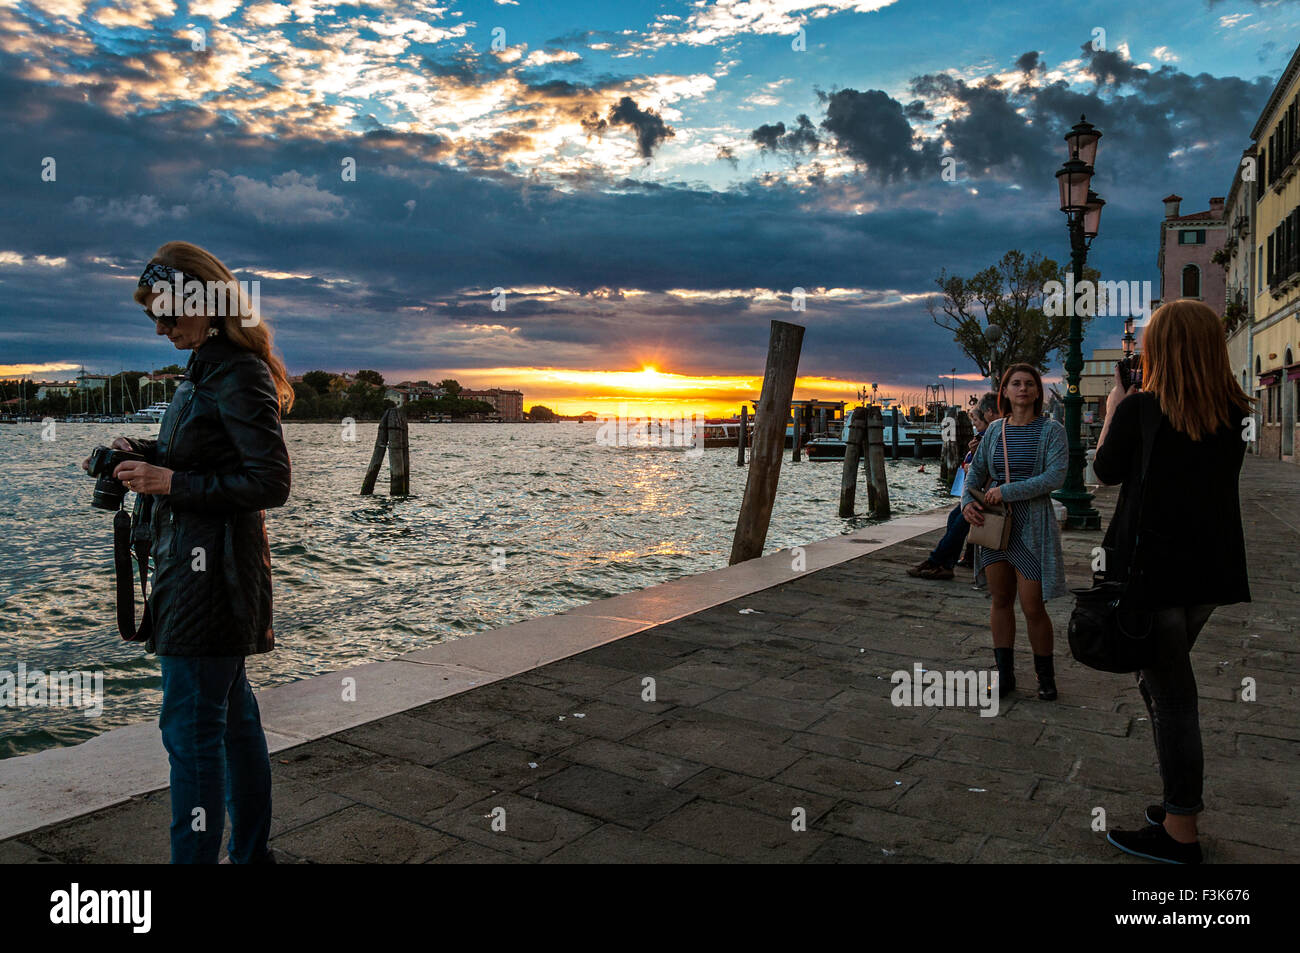 8th October 2015. San Basilio, Venice, Italy. People photograph the sunset over Canale di Fusina. Credit:  Richard Stock Photo